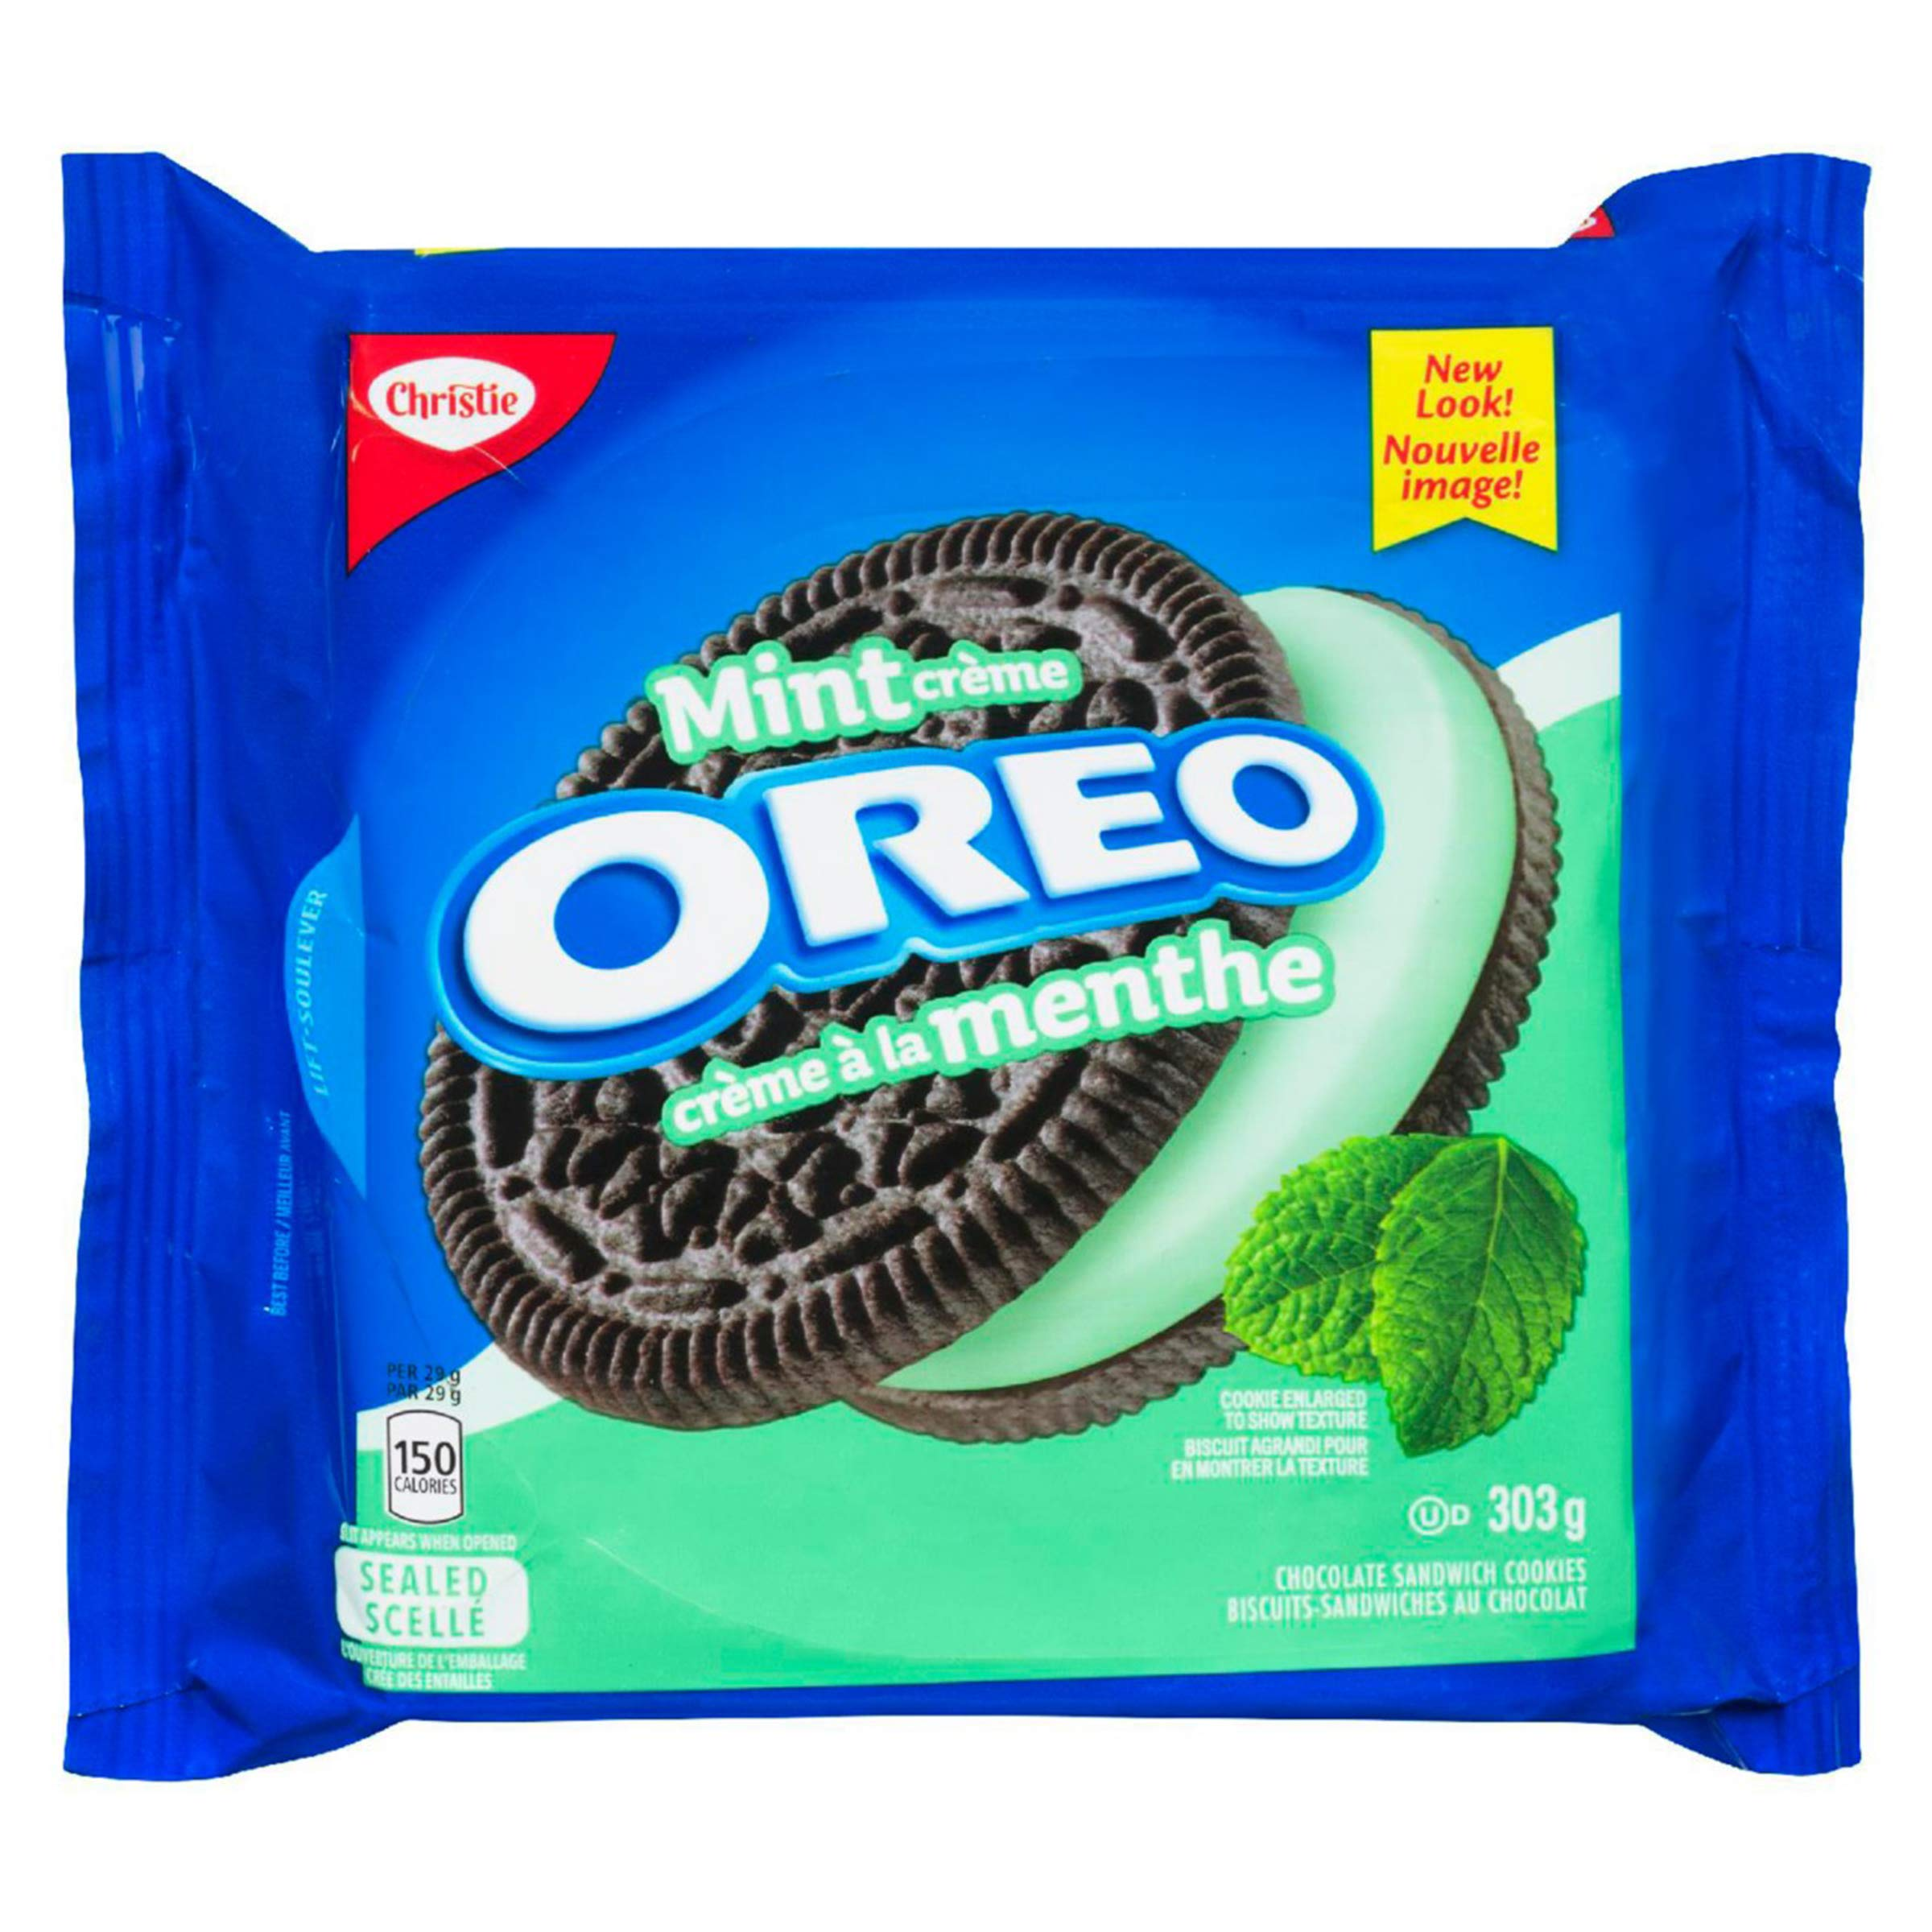 Oreo Mint Creme Chocolate Sandwich Cookies 303g {Imported from Canada}